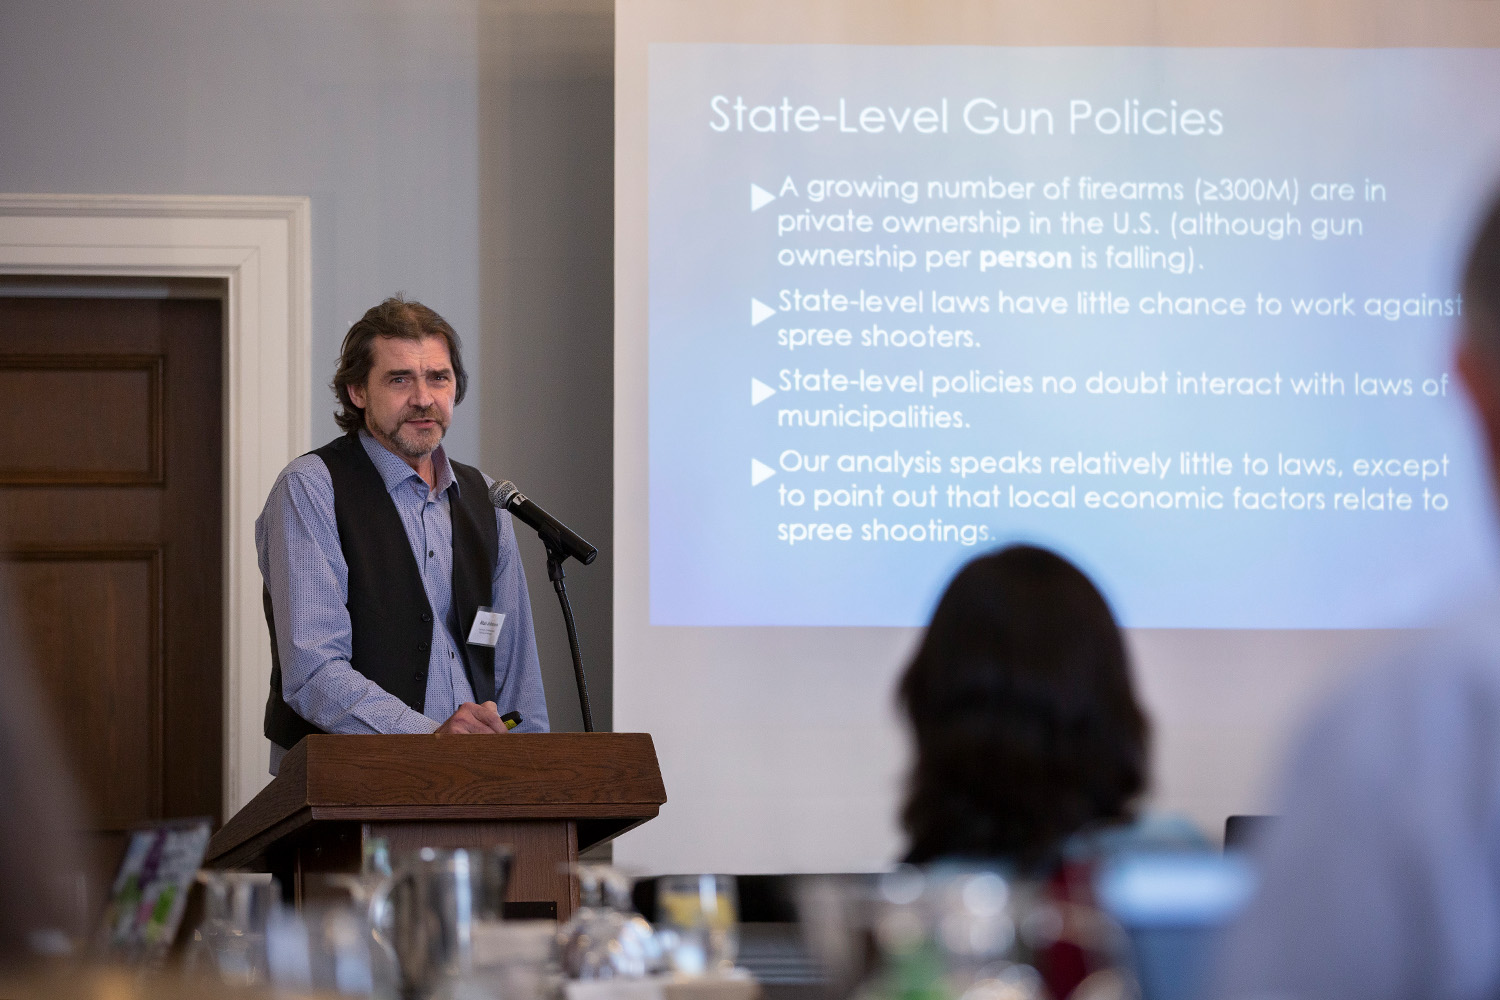 Blair T. Johnson, Board of Trustees Distinguished Professor of Psychology, presents at the Correlates, Causes, and Solutions for Firearm Violence in America conference at the Hartford Club on April 4, 2019. (Bri Diaz/UConn Photo)